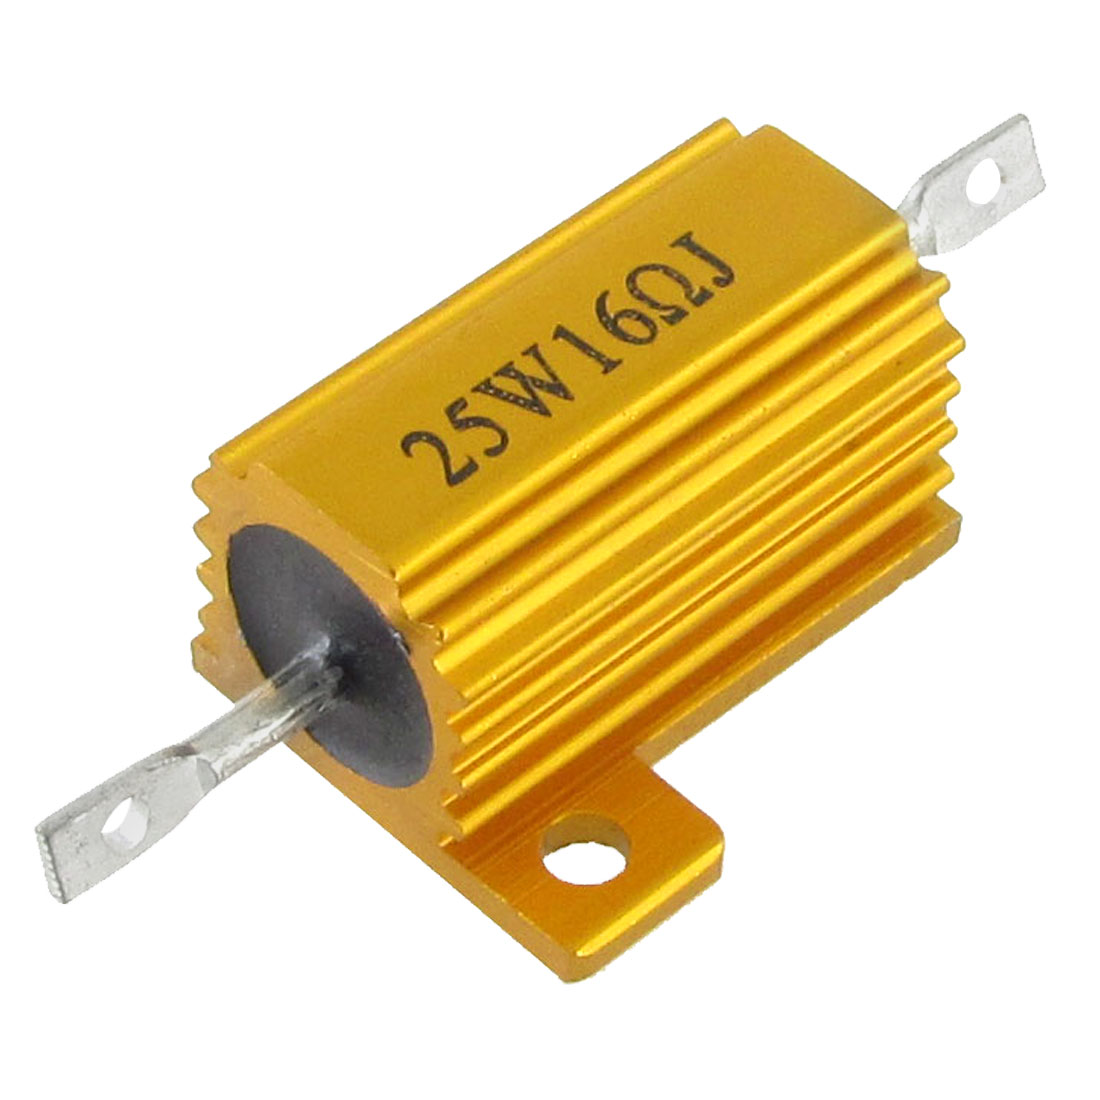 Gold Tone 5% 16 Ohm 25W Aluminum Housed Wirewound Resistor